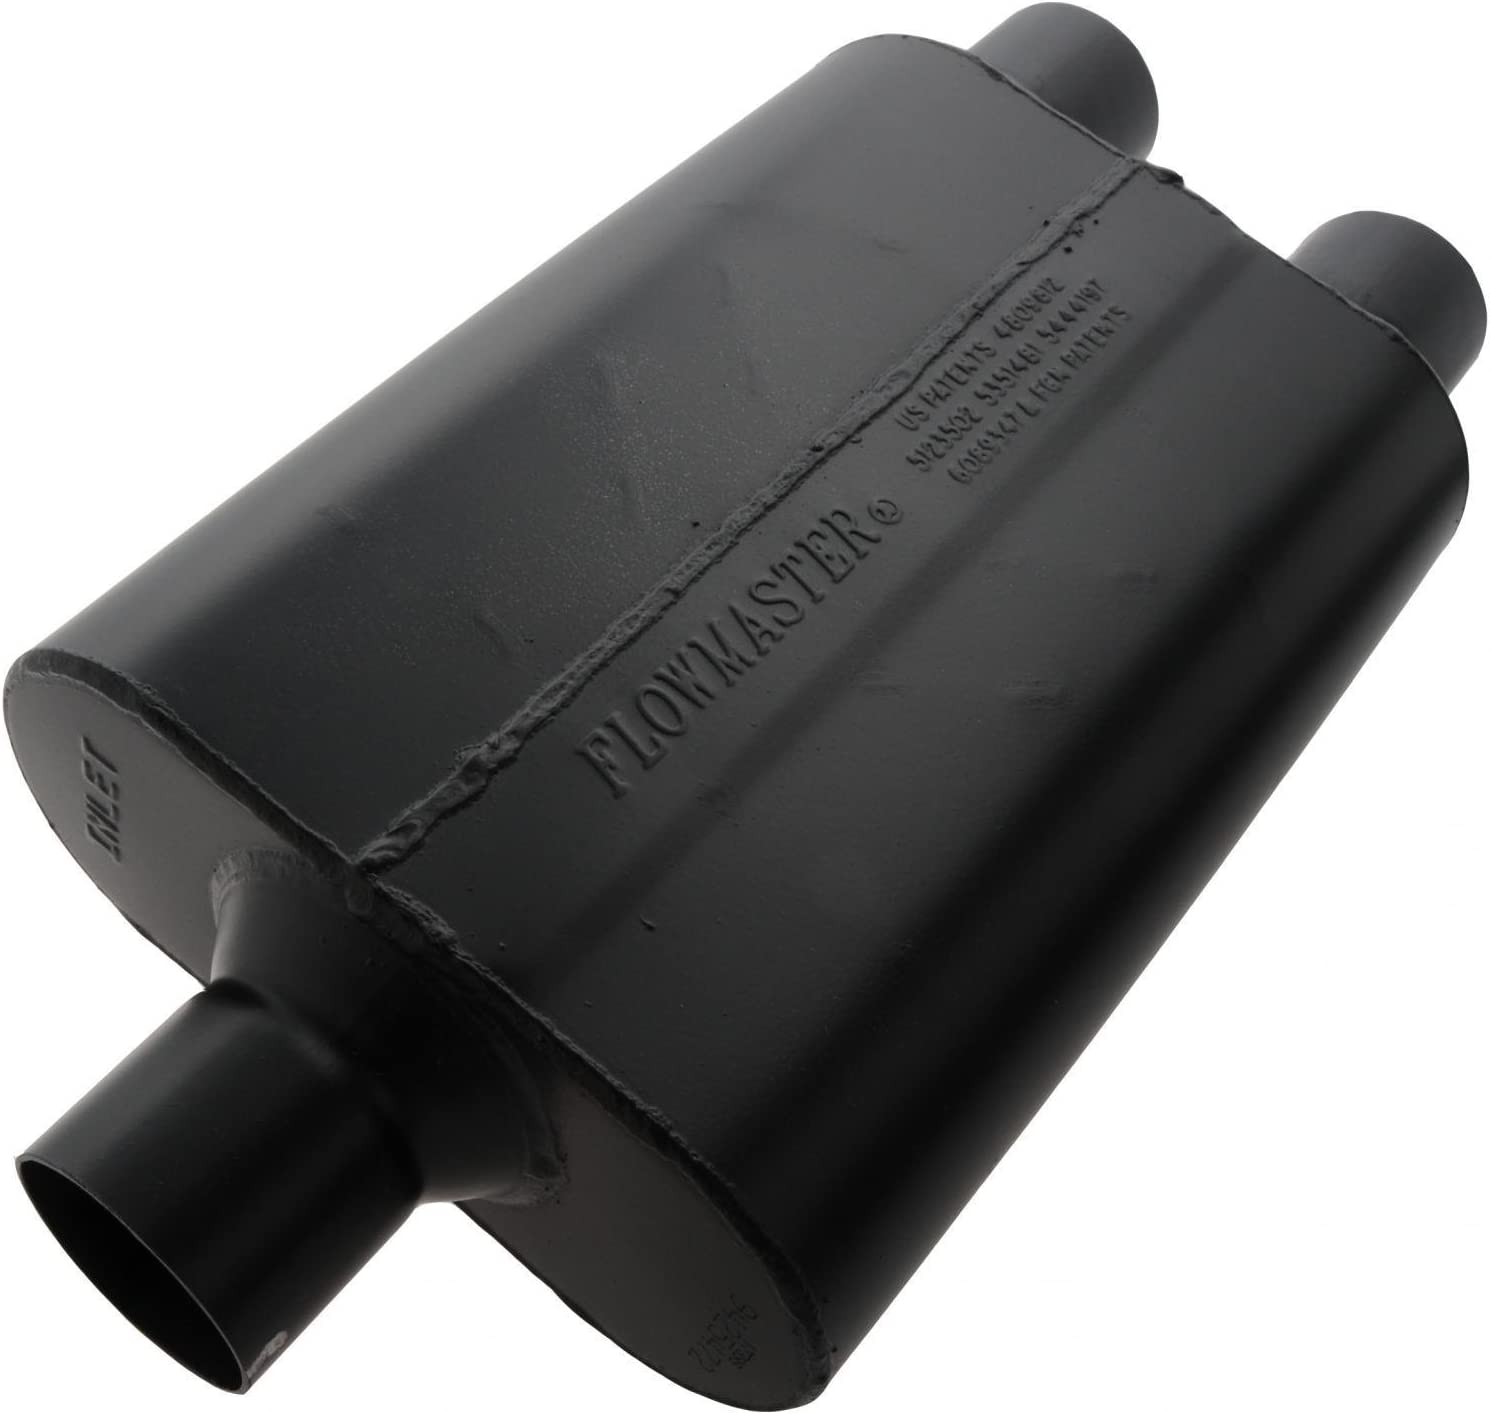 Flowmaster 9425472 Super 44 Muffler 2.50 Center IN 2.50 Dual OUT Aggressive Sound